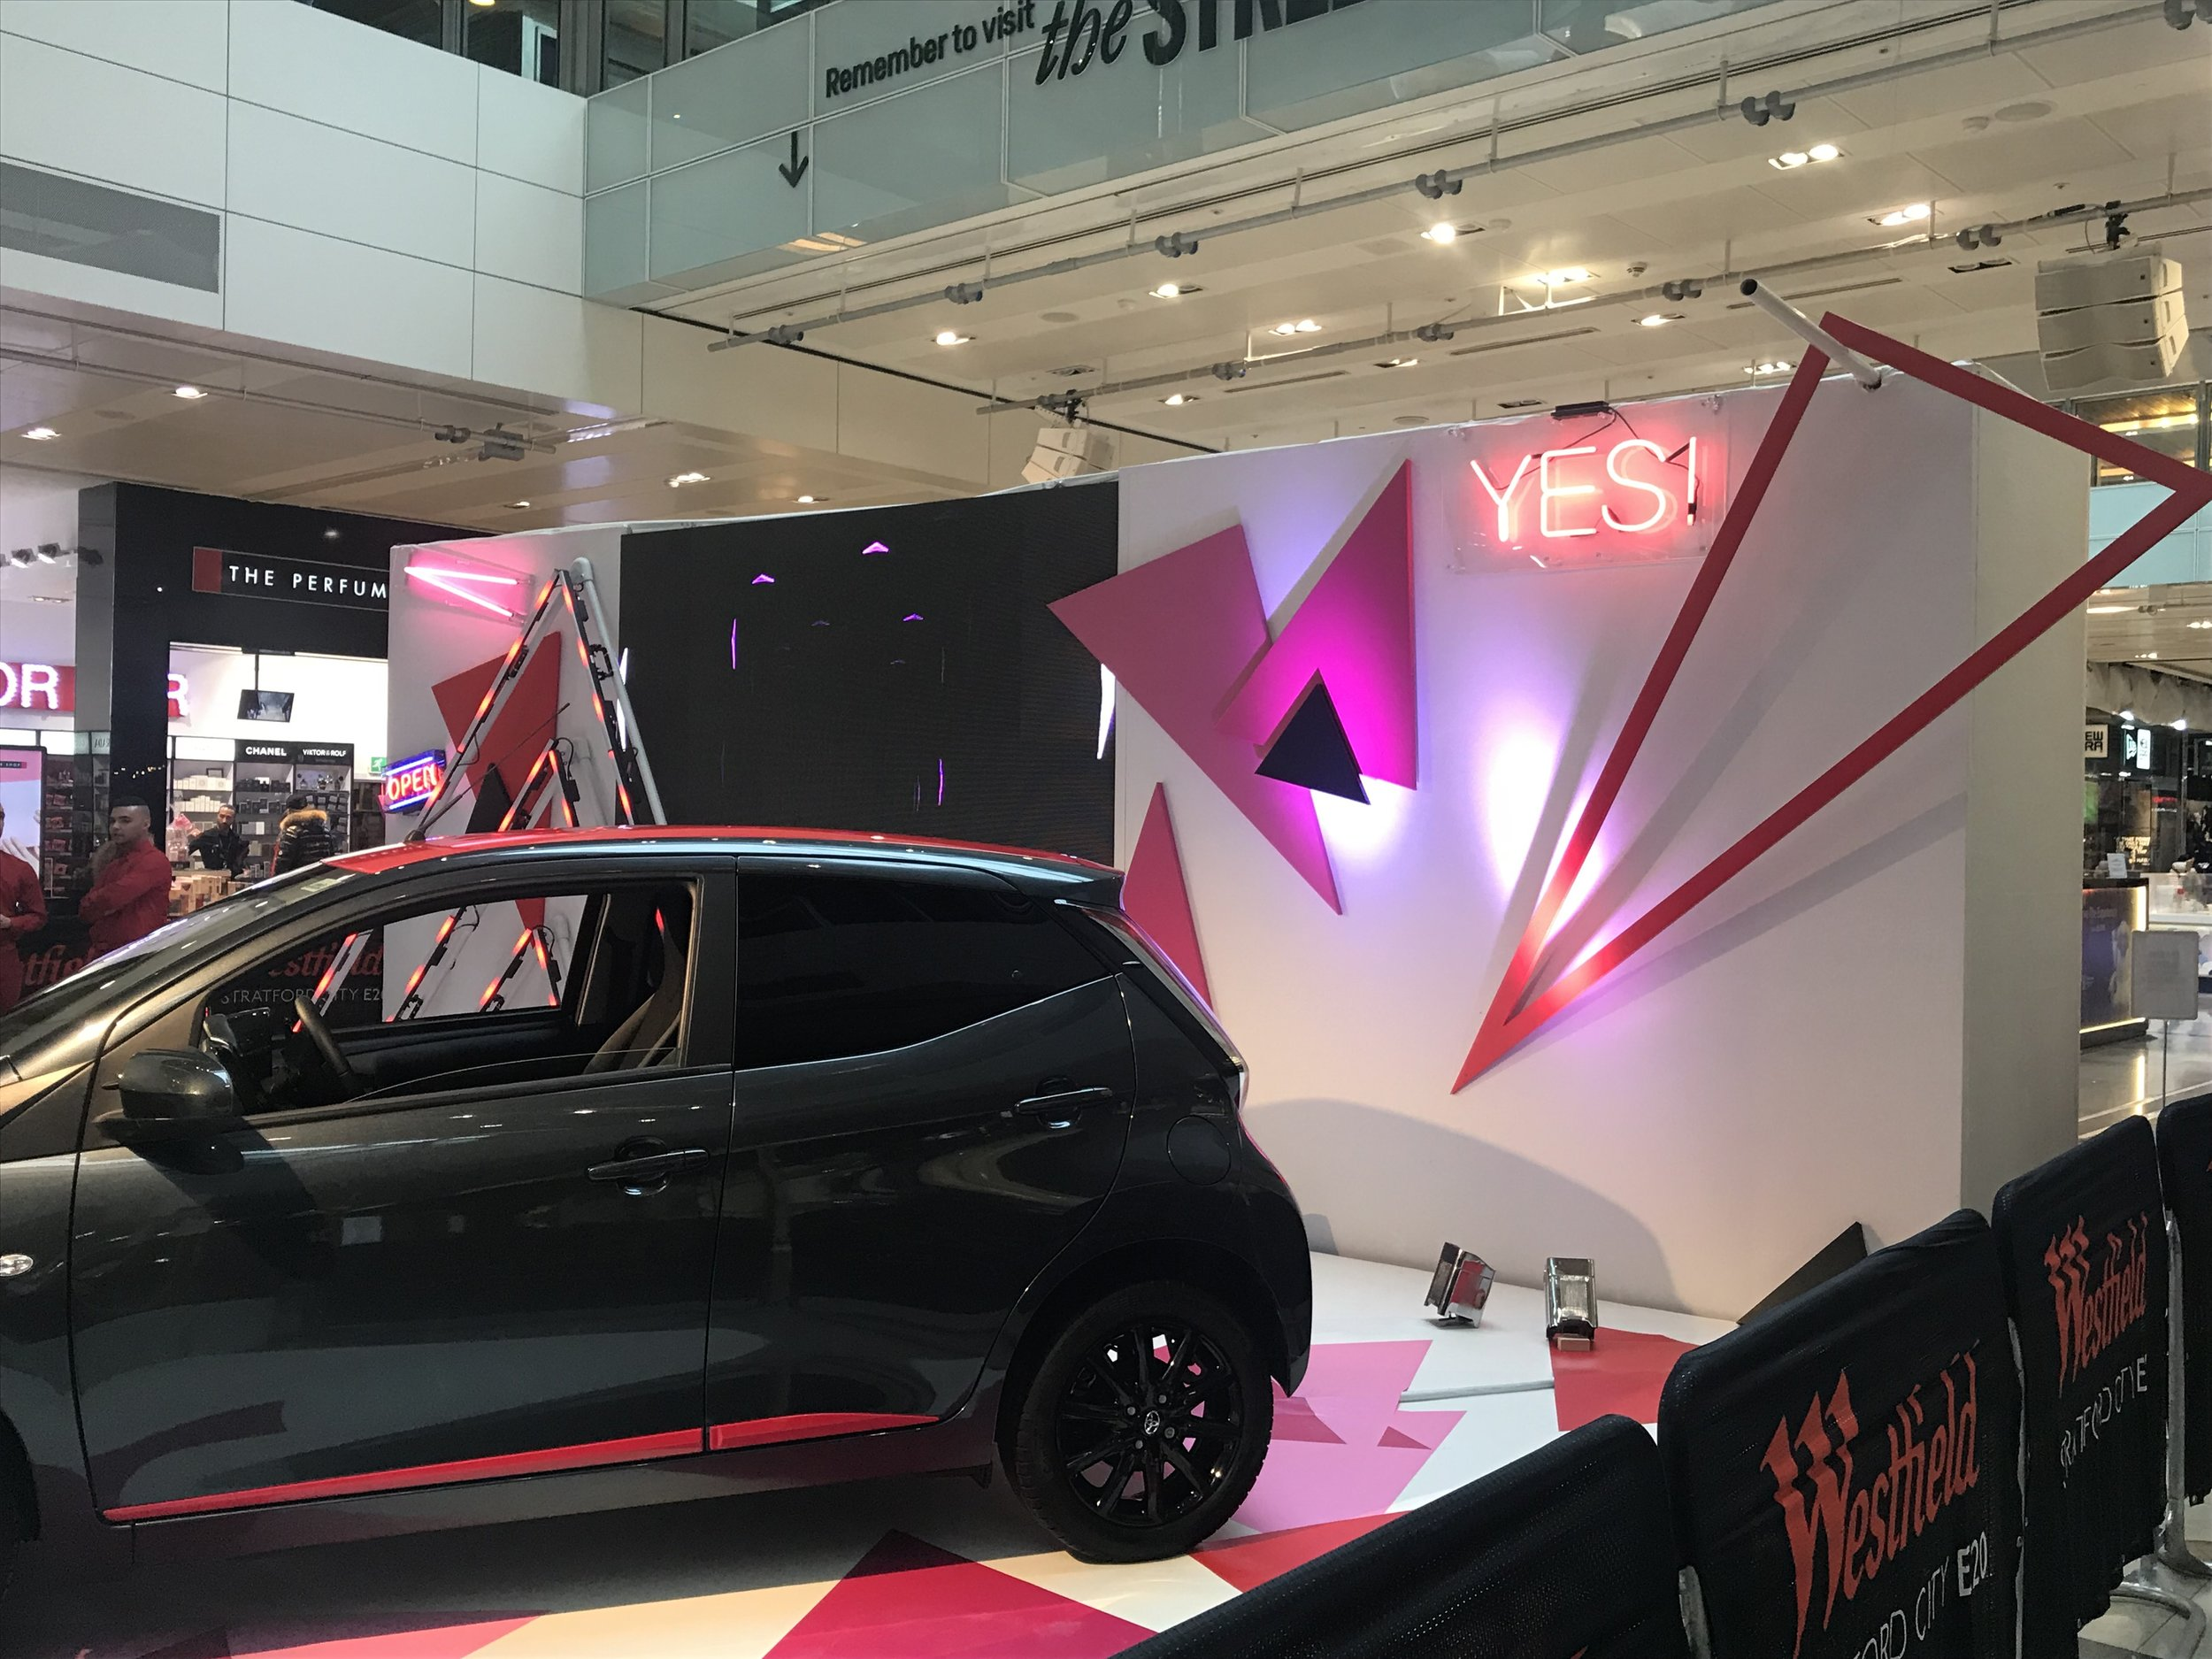 Toyota car with pink triangles behind it.